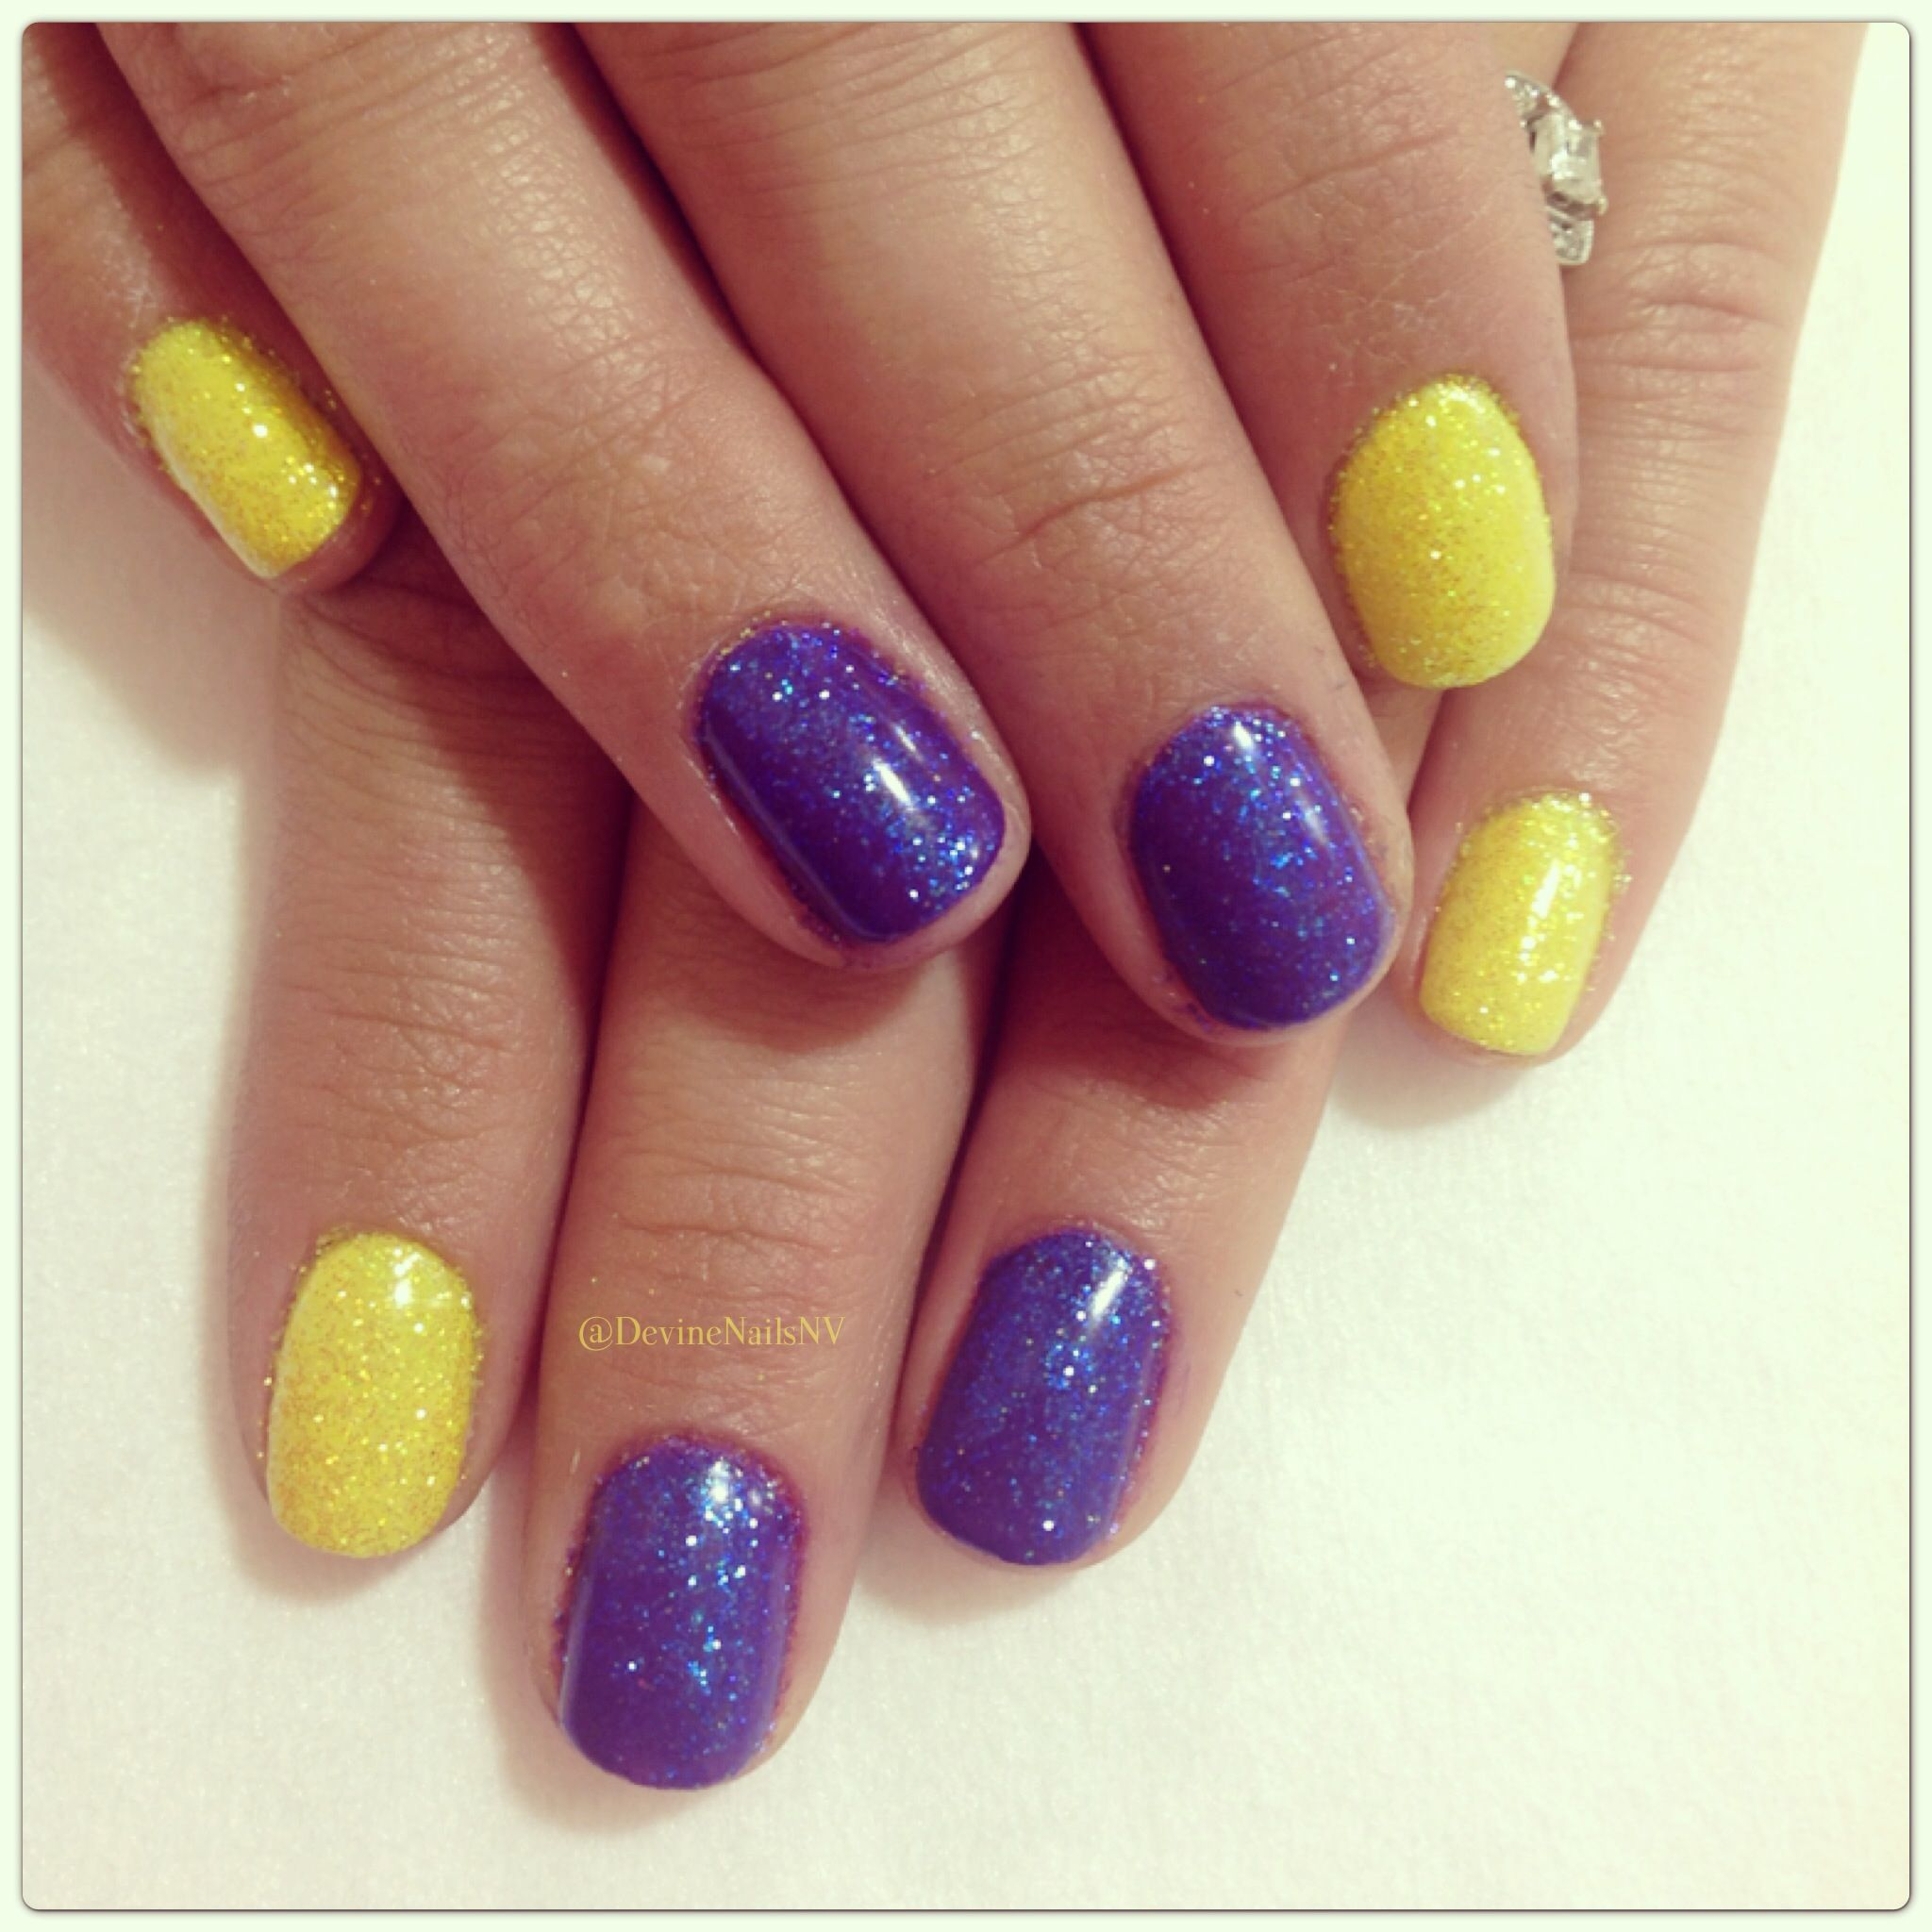 neon yellow and purple nails 2013